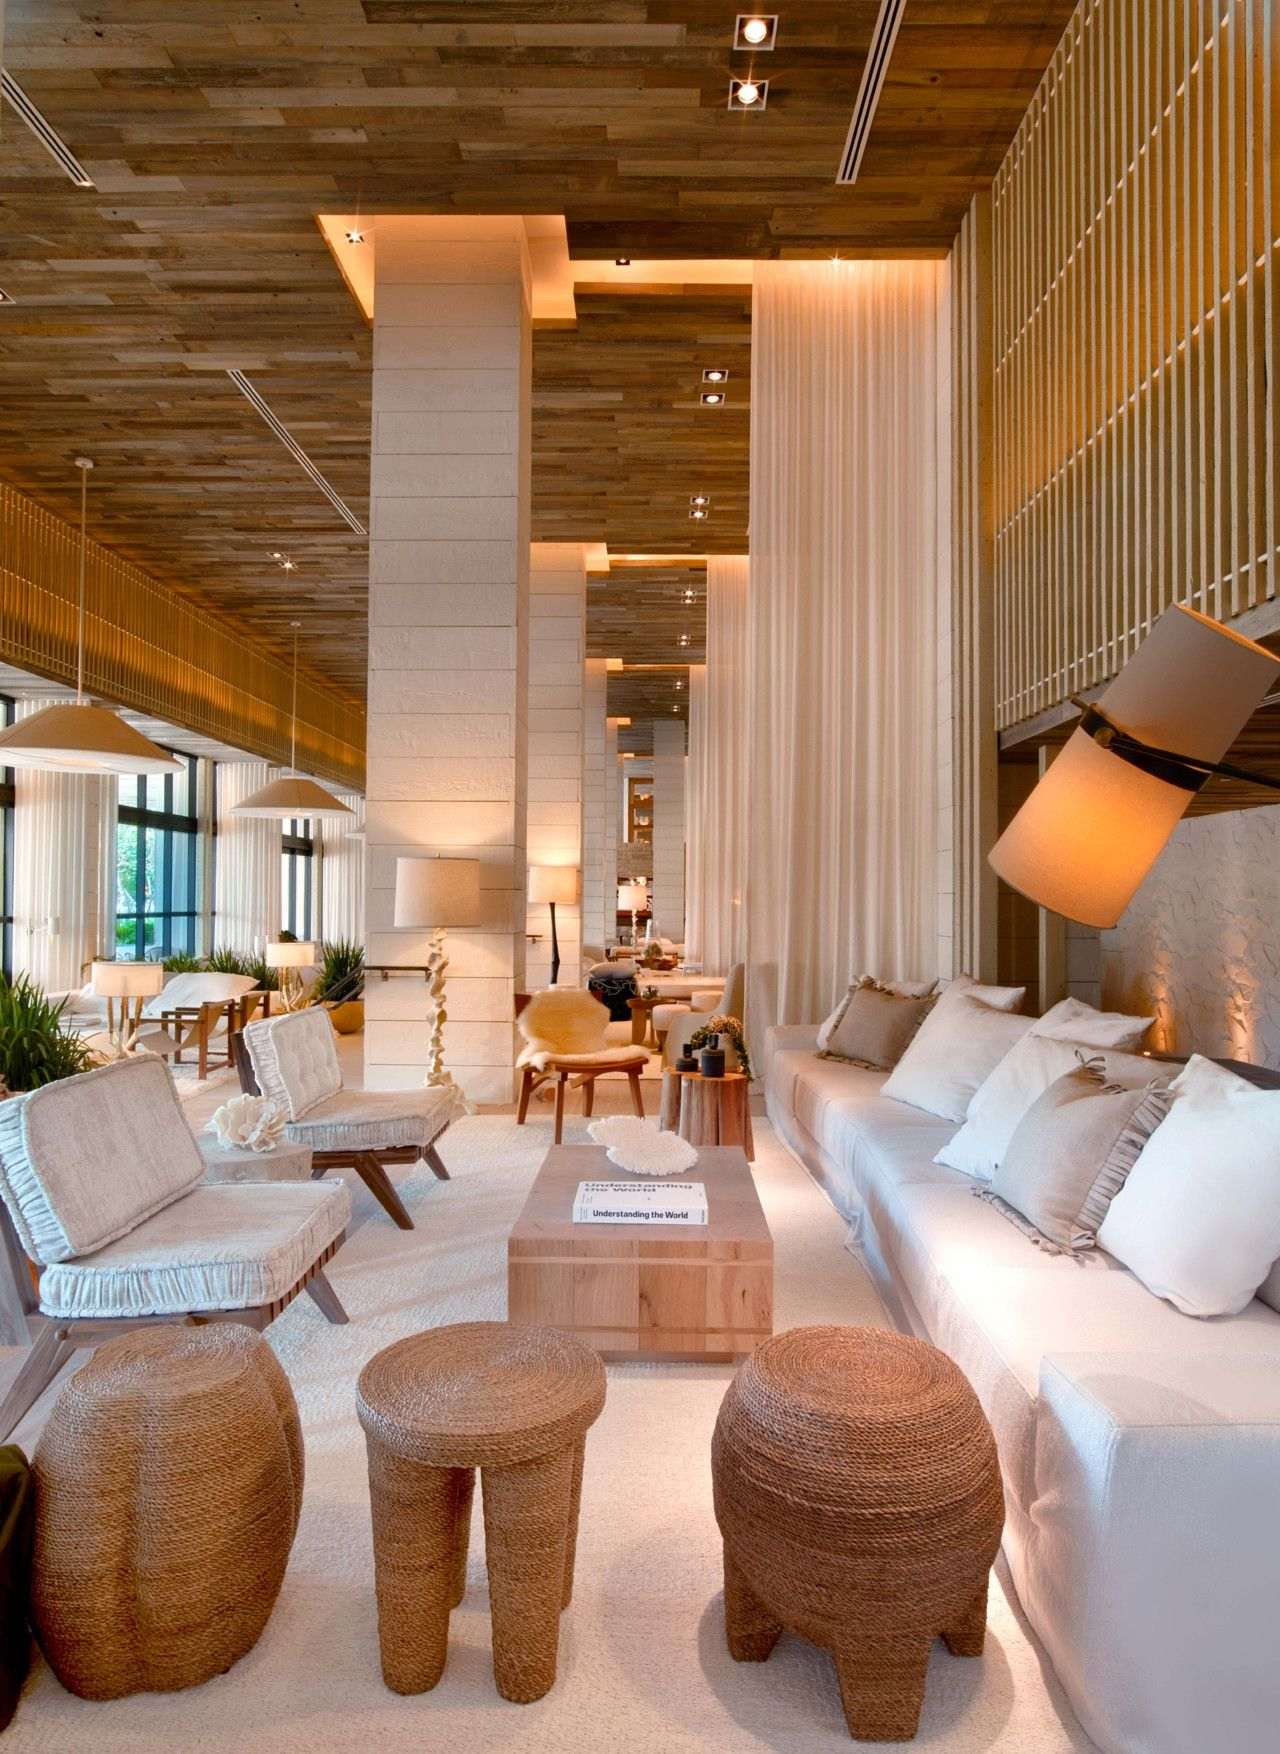 Recessed Curtain Track Repetition Living Travel Galleries Inside The New 1 Hotel South Beach